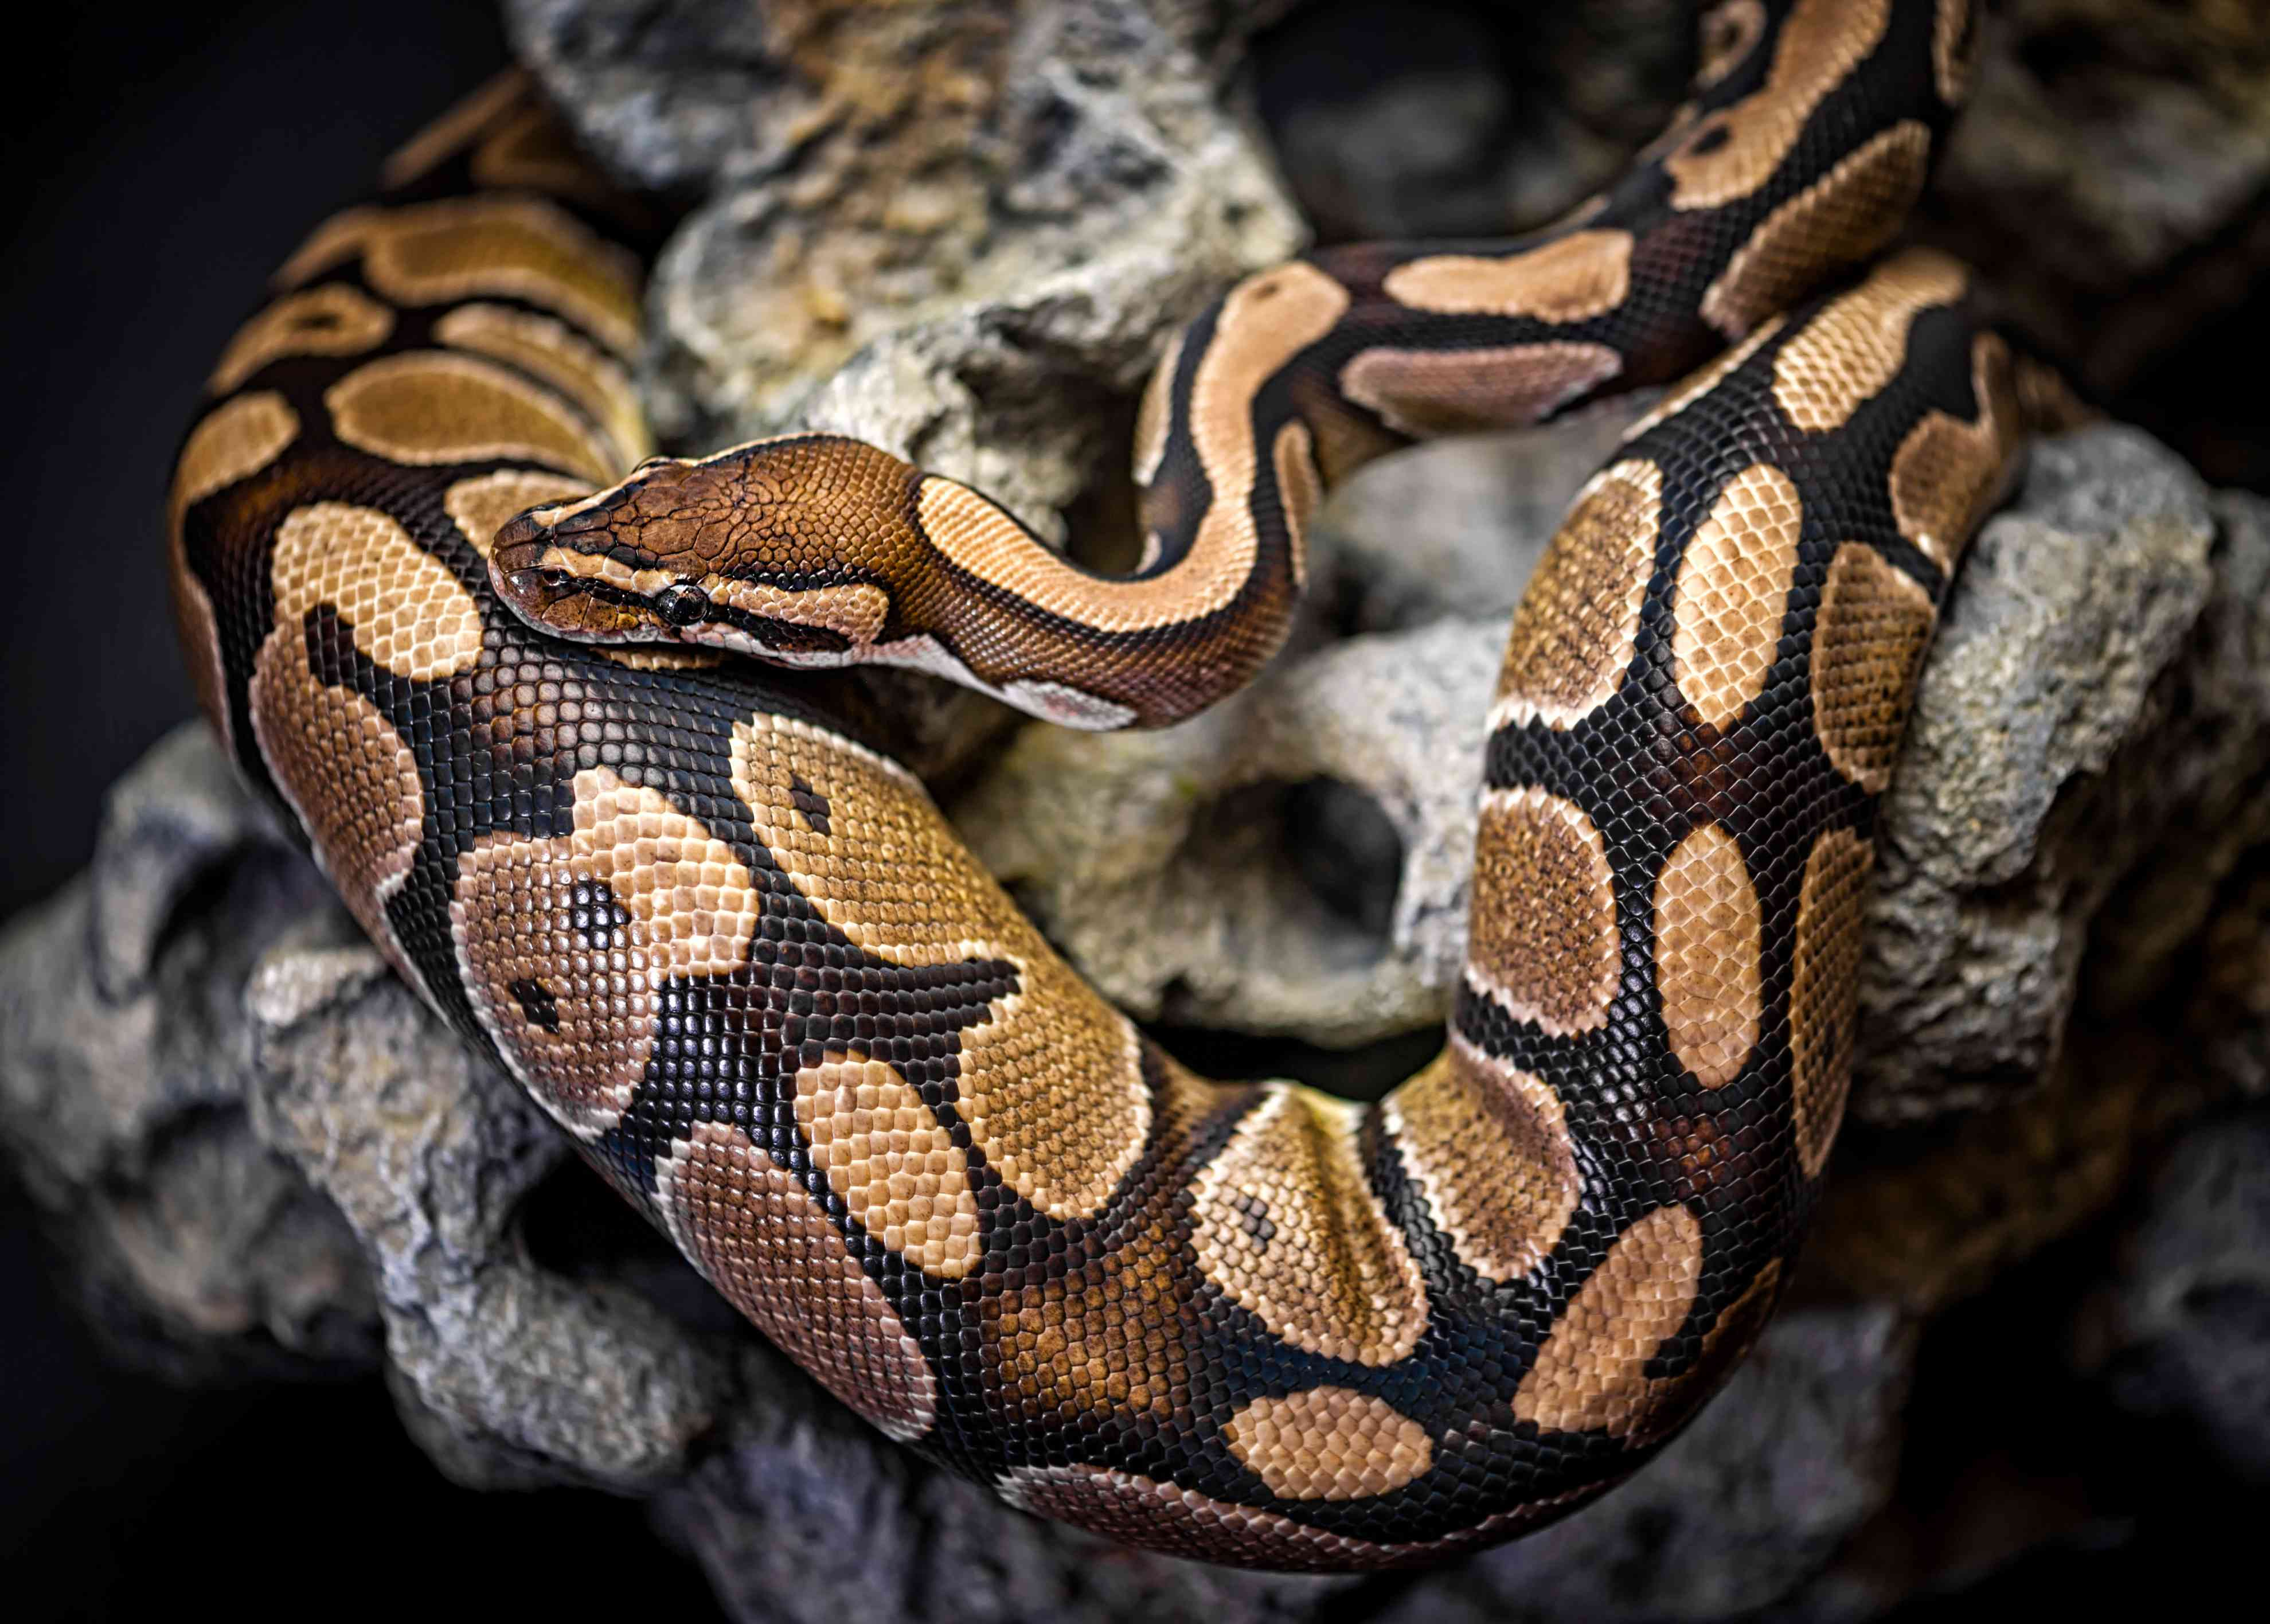 A python with brown and tan markings